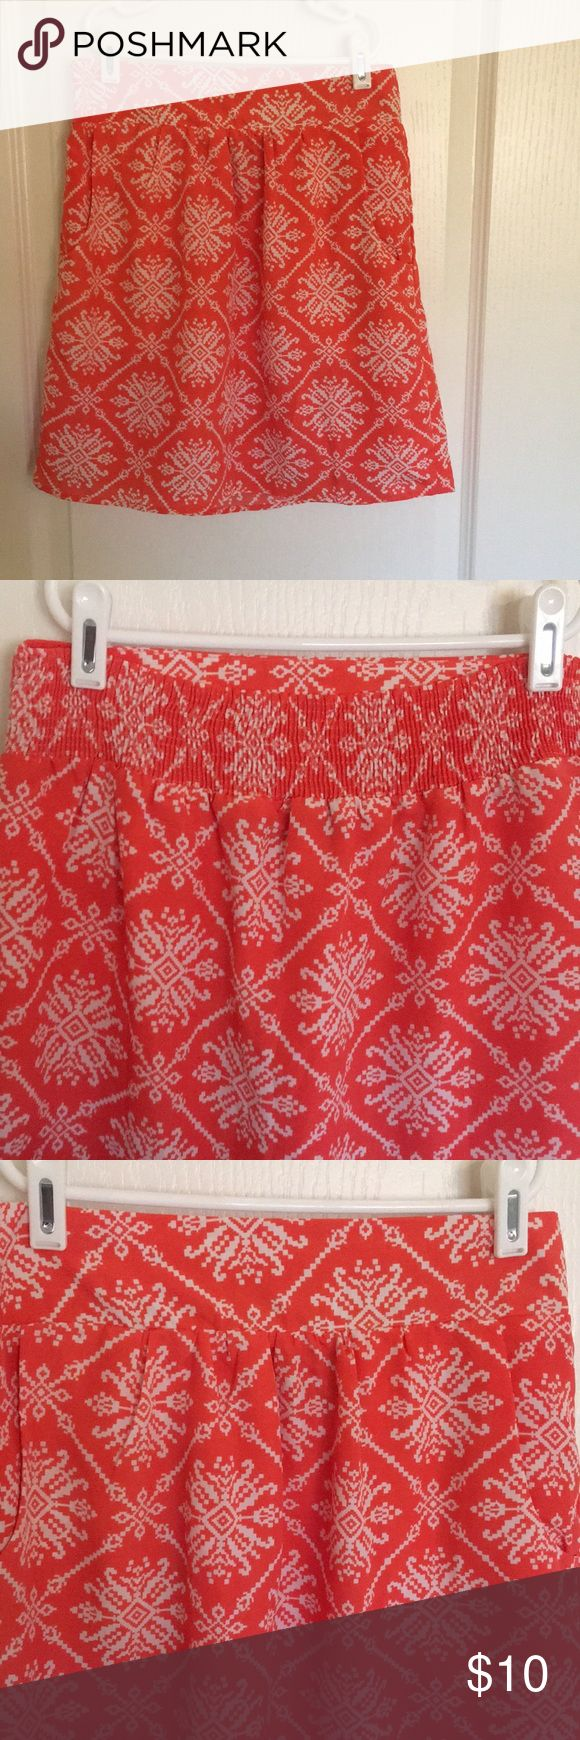 Printed Skirt with Pockets This skirt has a fun print with pockets. It has a wide waistband with elastic back. It is great to pair with a T-shirt and Sanders for a casual look. The color is a peach color with an orange tone. Paraella Skirts Mini